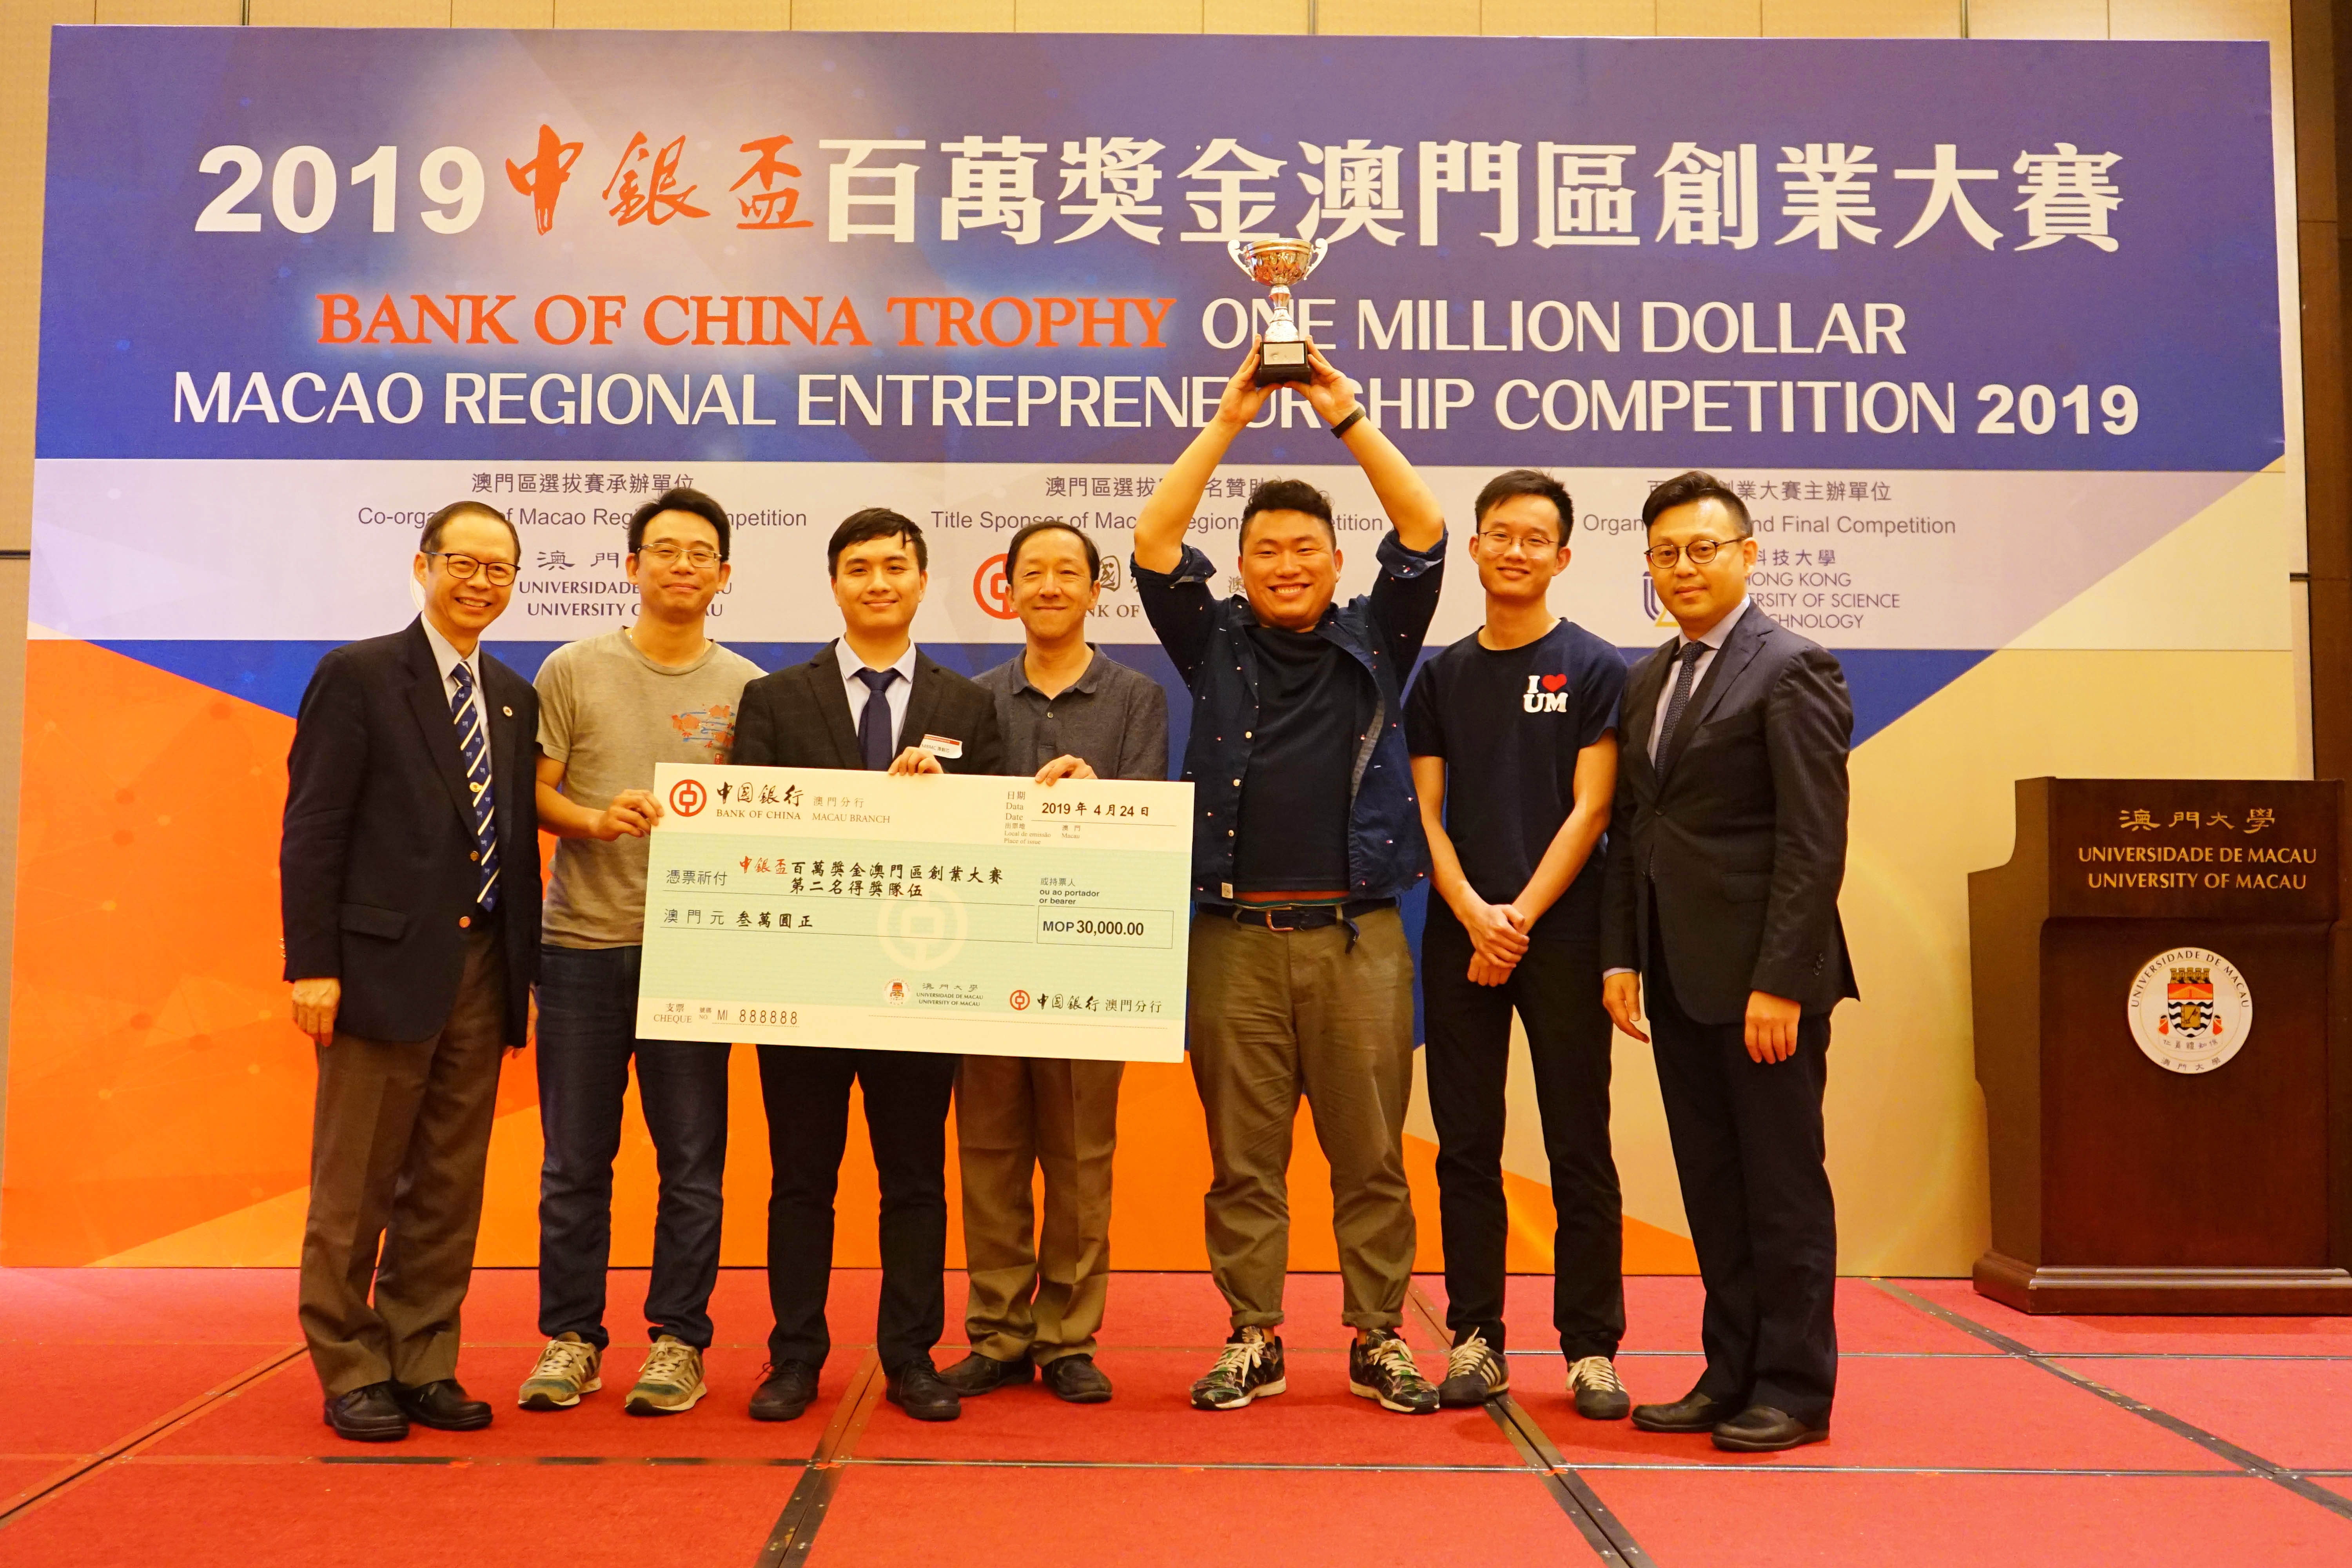 Vice Rector Billy So (1st from left) and Economic Bureau Deputy Director Lau Wai Meng (1st from right) present the second prize